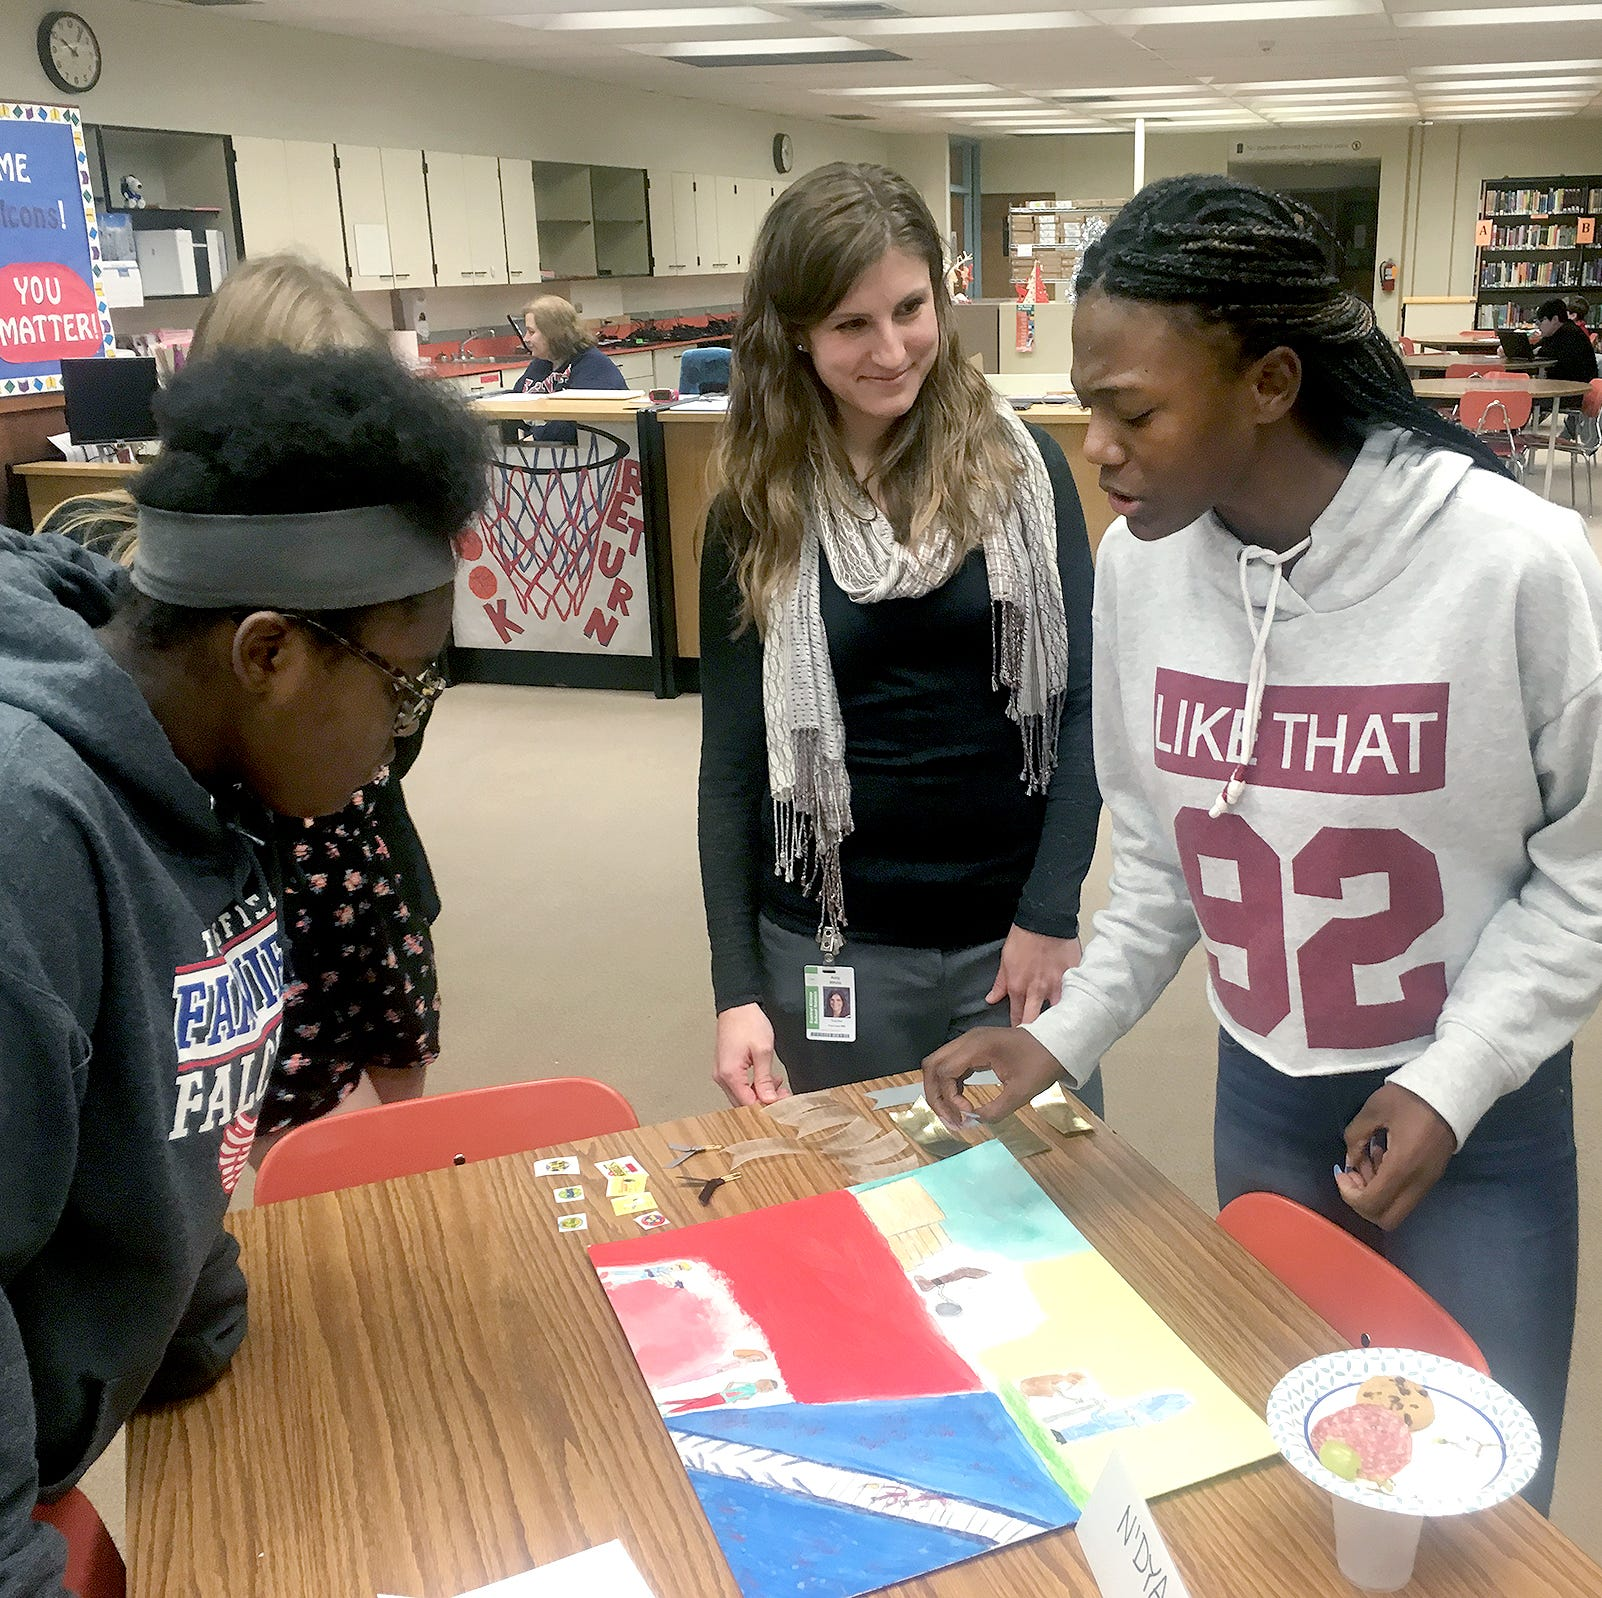 Students' artwork shows personal connections to racism